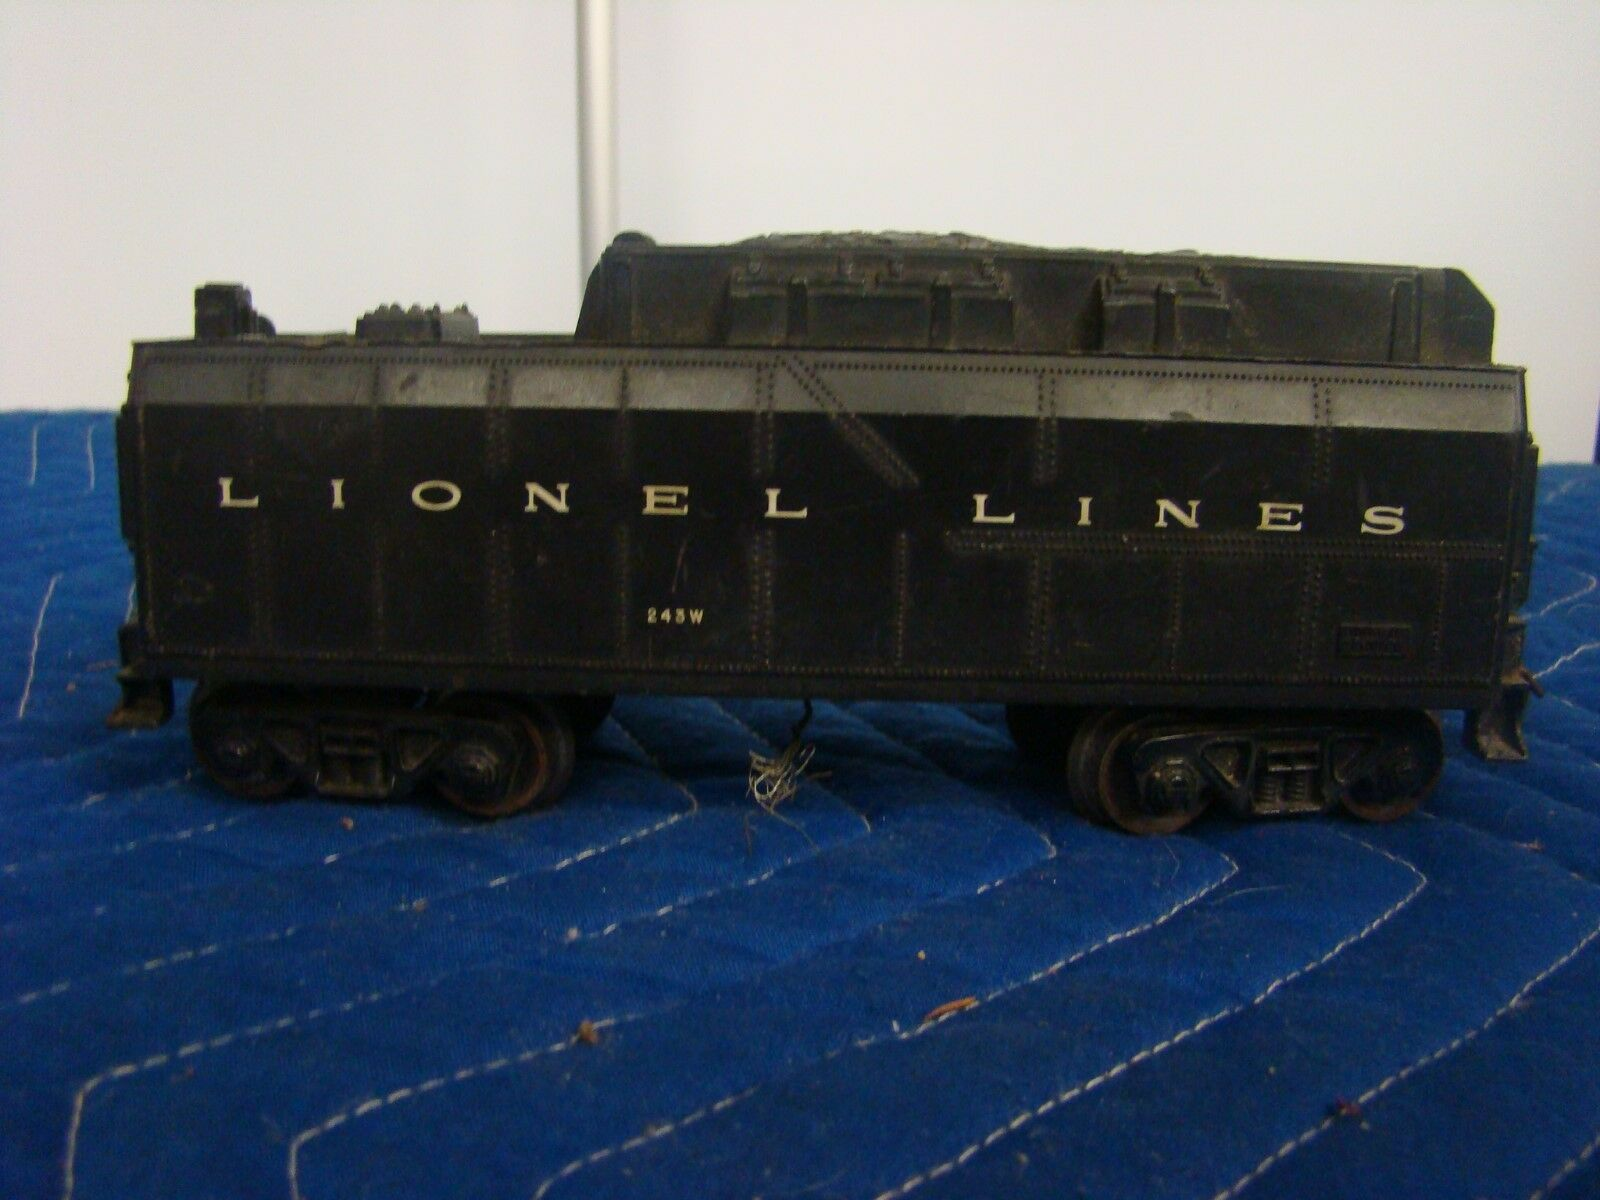 LIONEL POST WAR O 243W LIONEL LINES WHISTLE TENDER**FREE SHIPPING